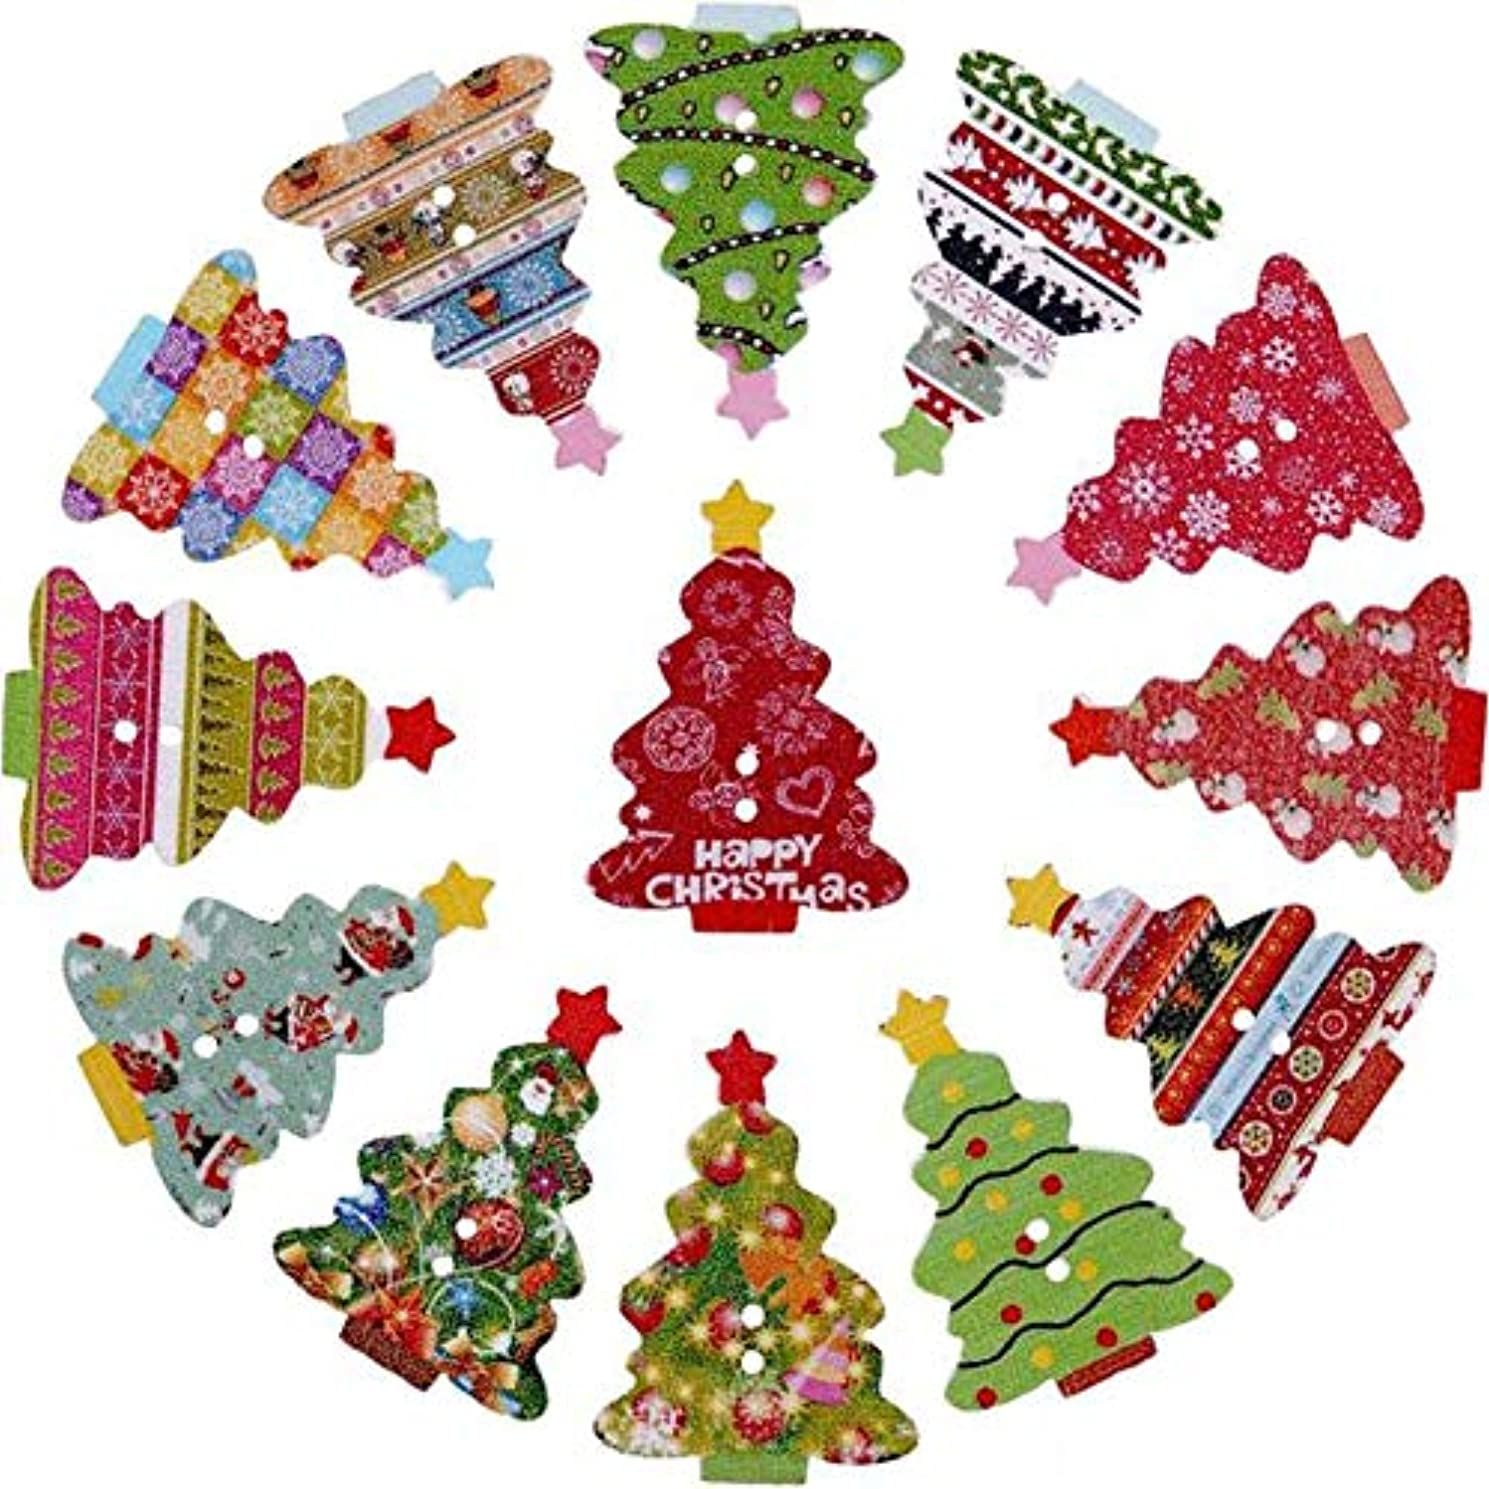 XGuangage Mixed Random Christmas 2 Holes Wooden Buttons for Sewing Crafting (100pcs Tree)